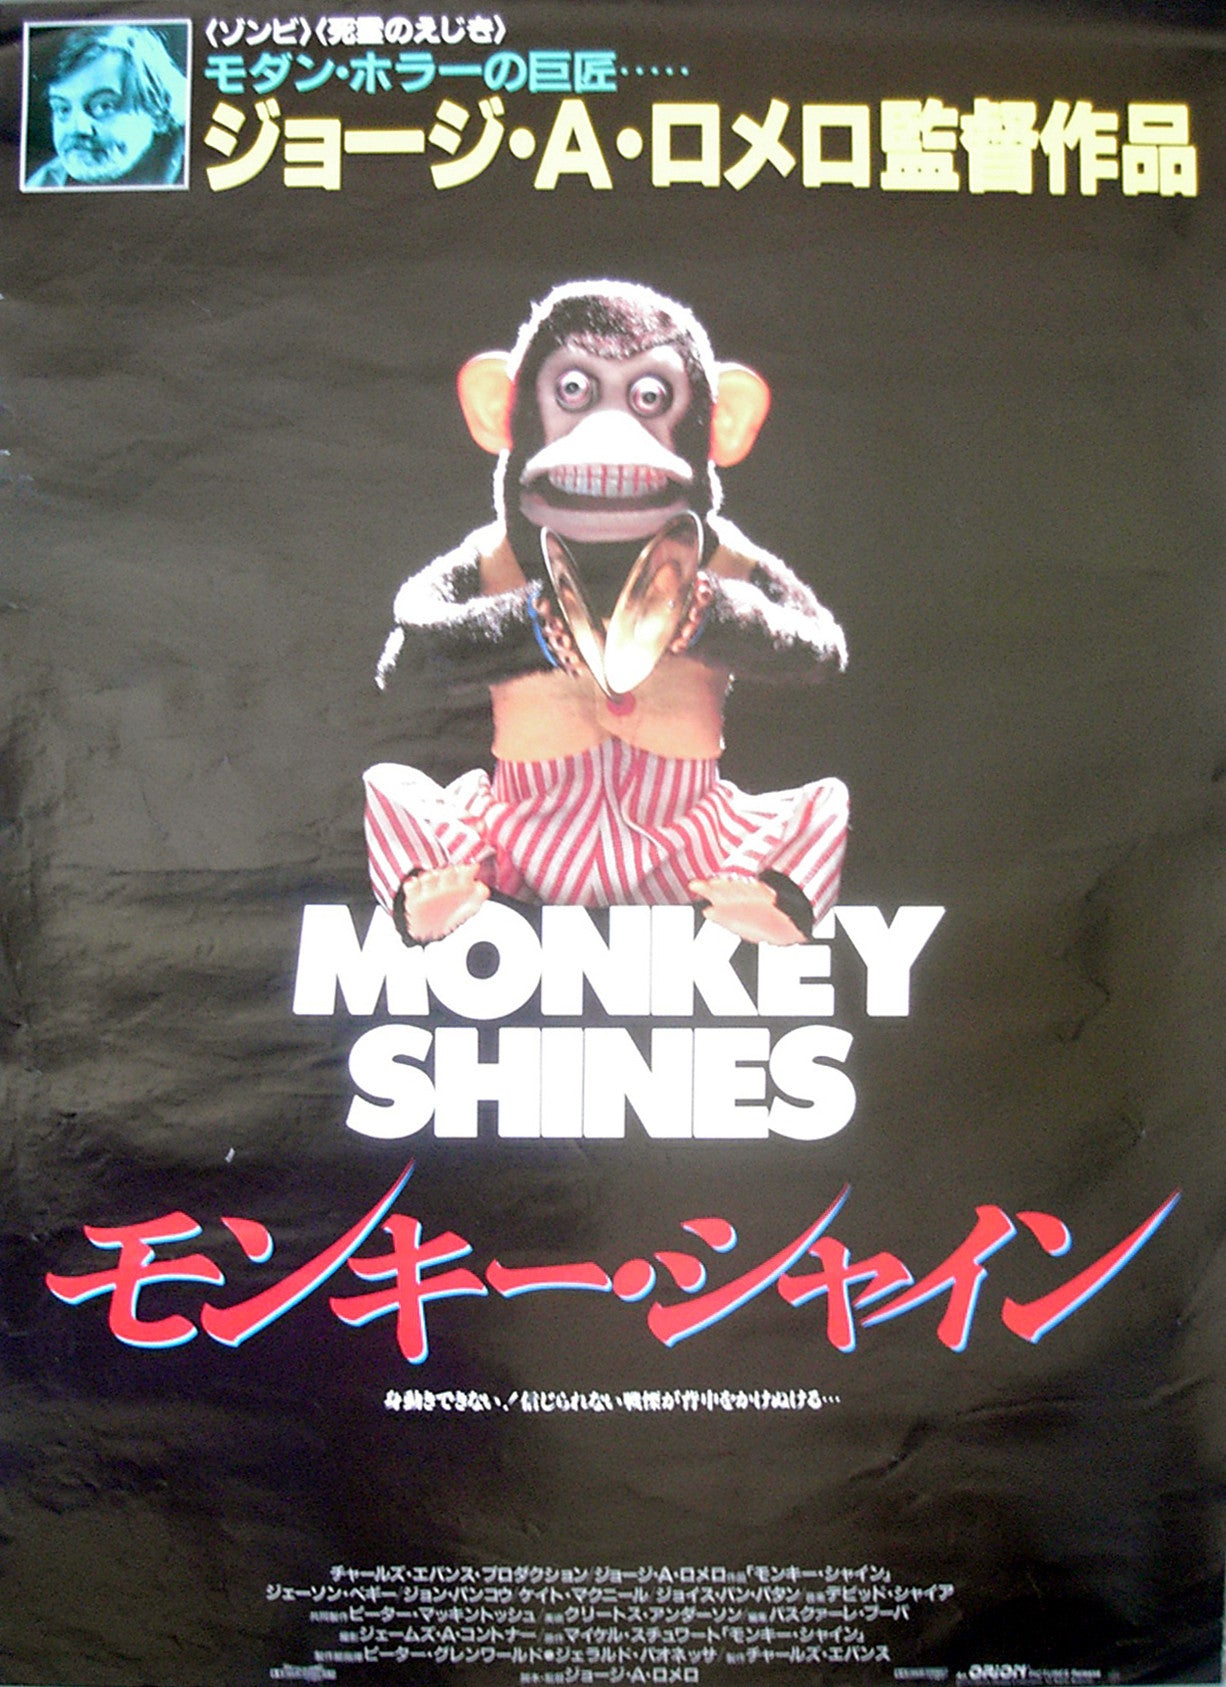 MONKEY SHINES - Japanese poster